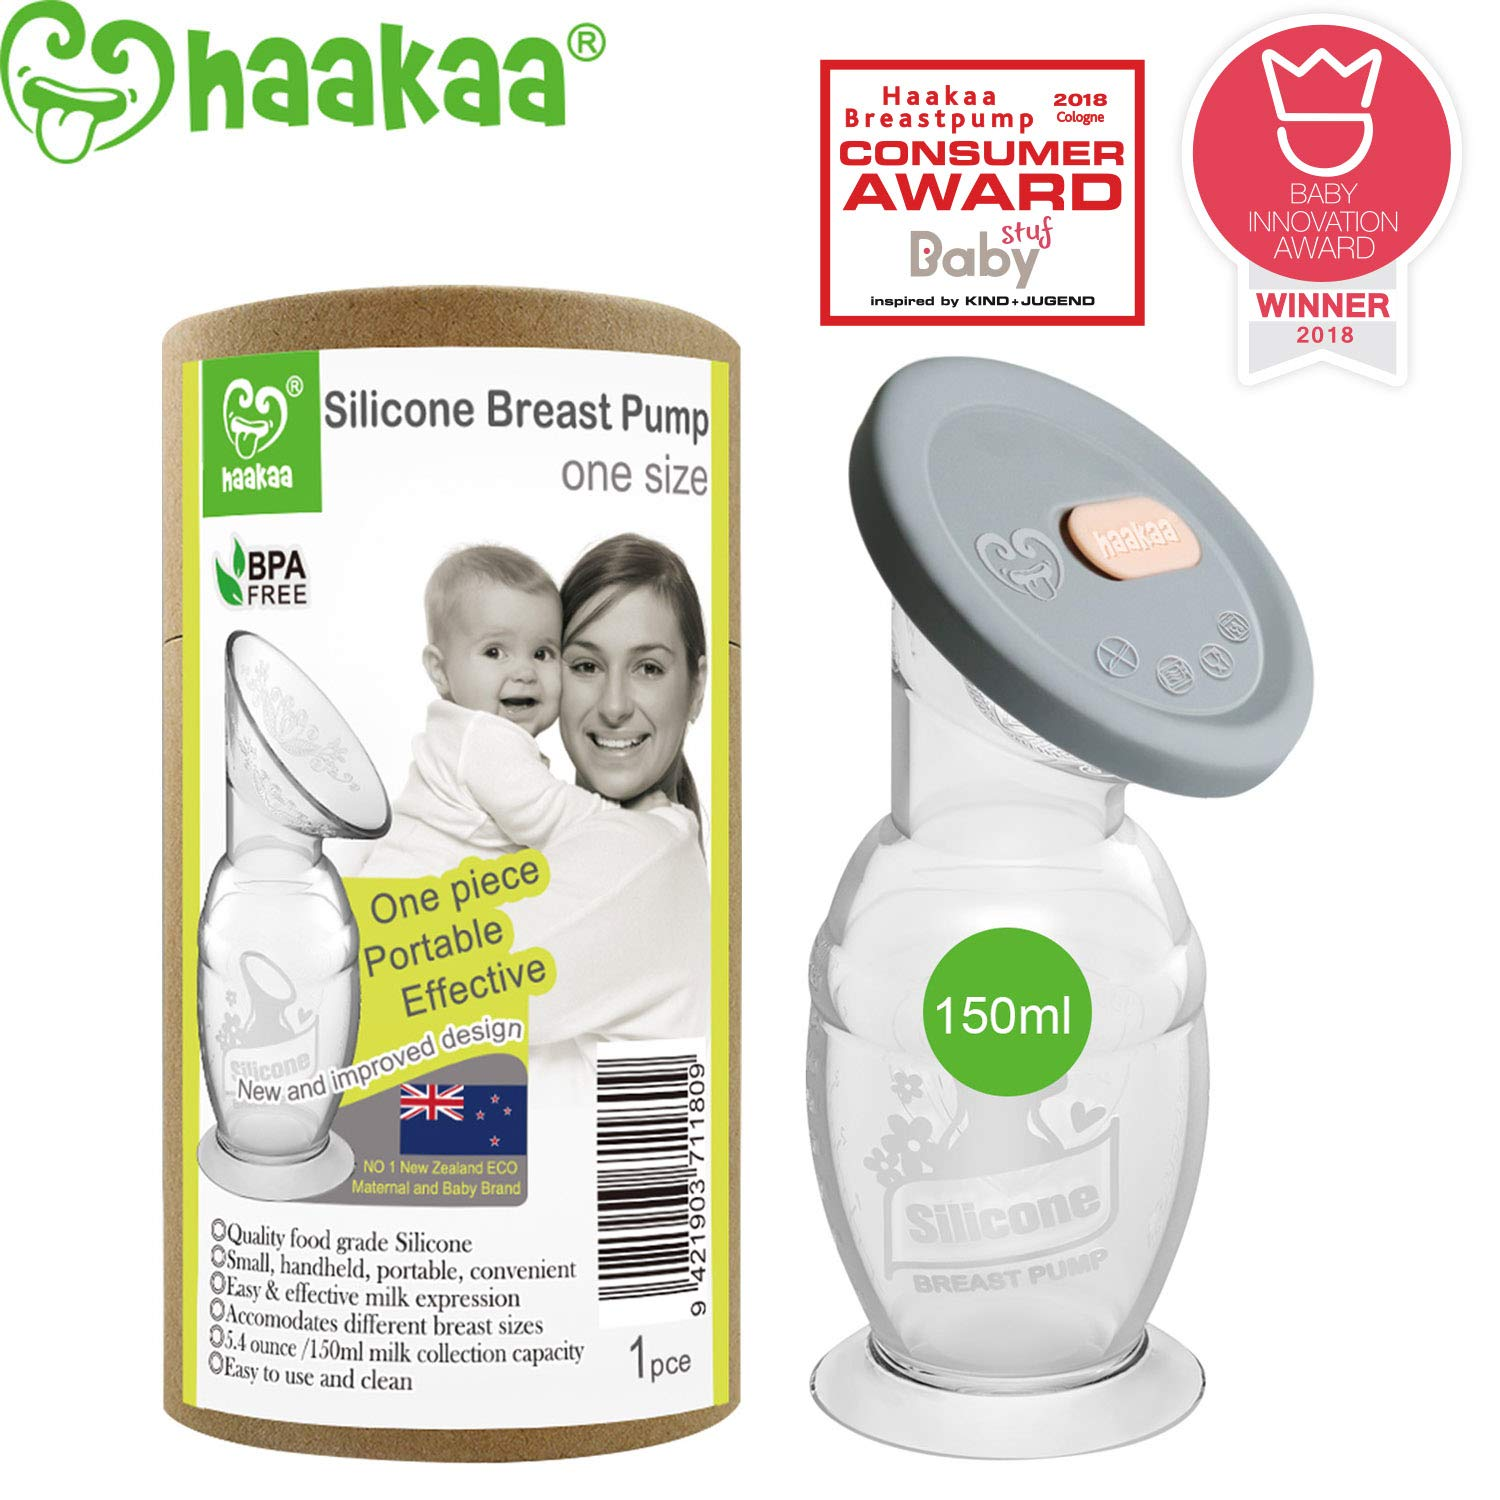 Haakaa Silicone Breast Pump & Silicone Cap 5.4oz/150ml by haakaa